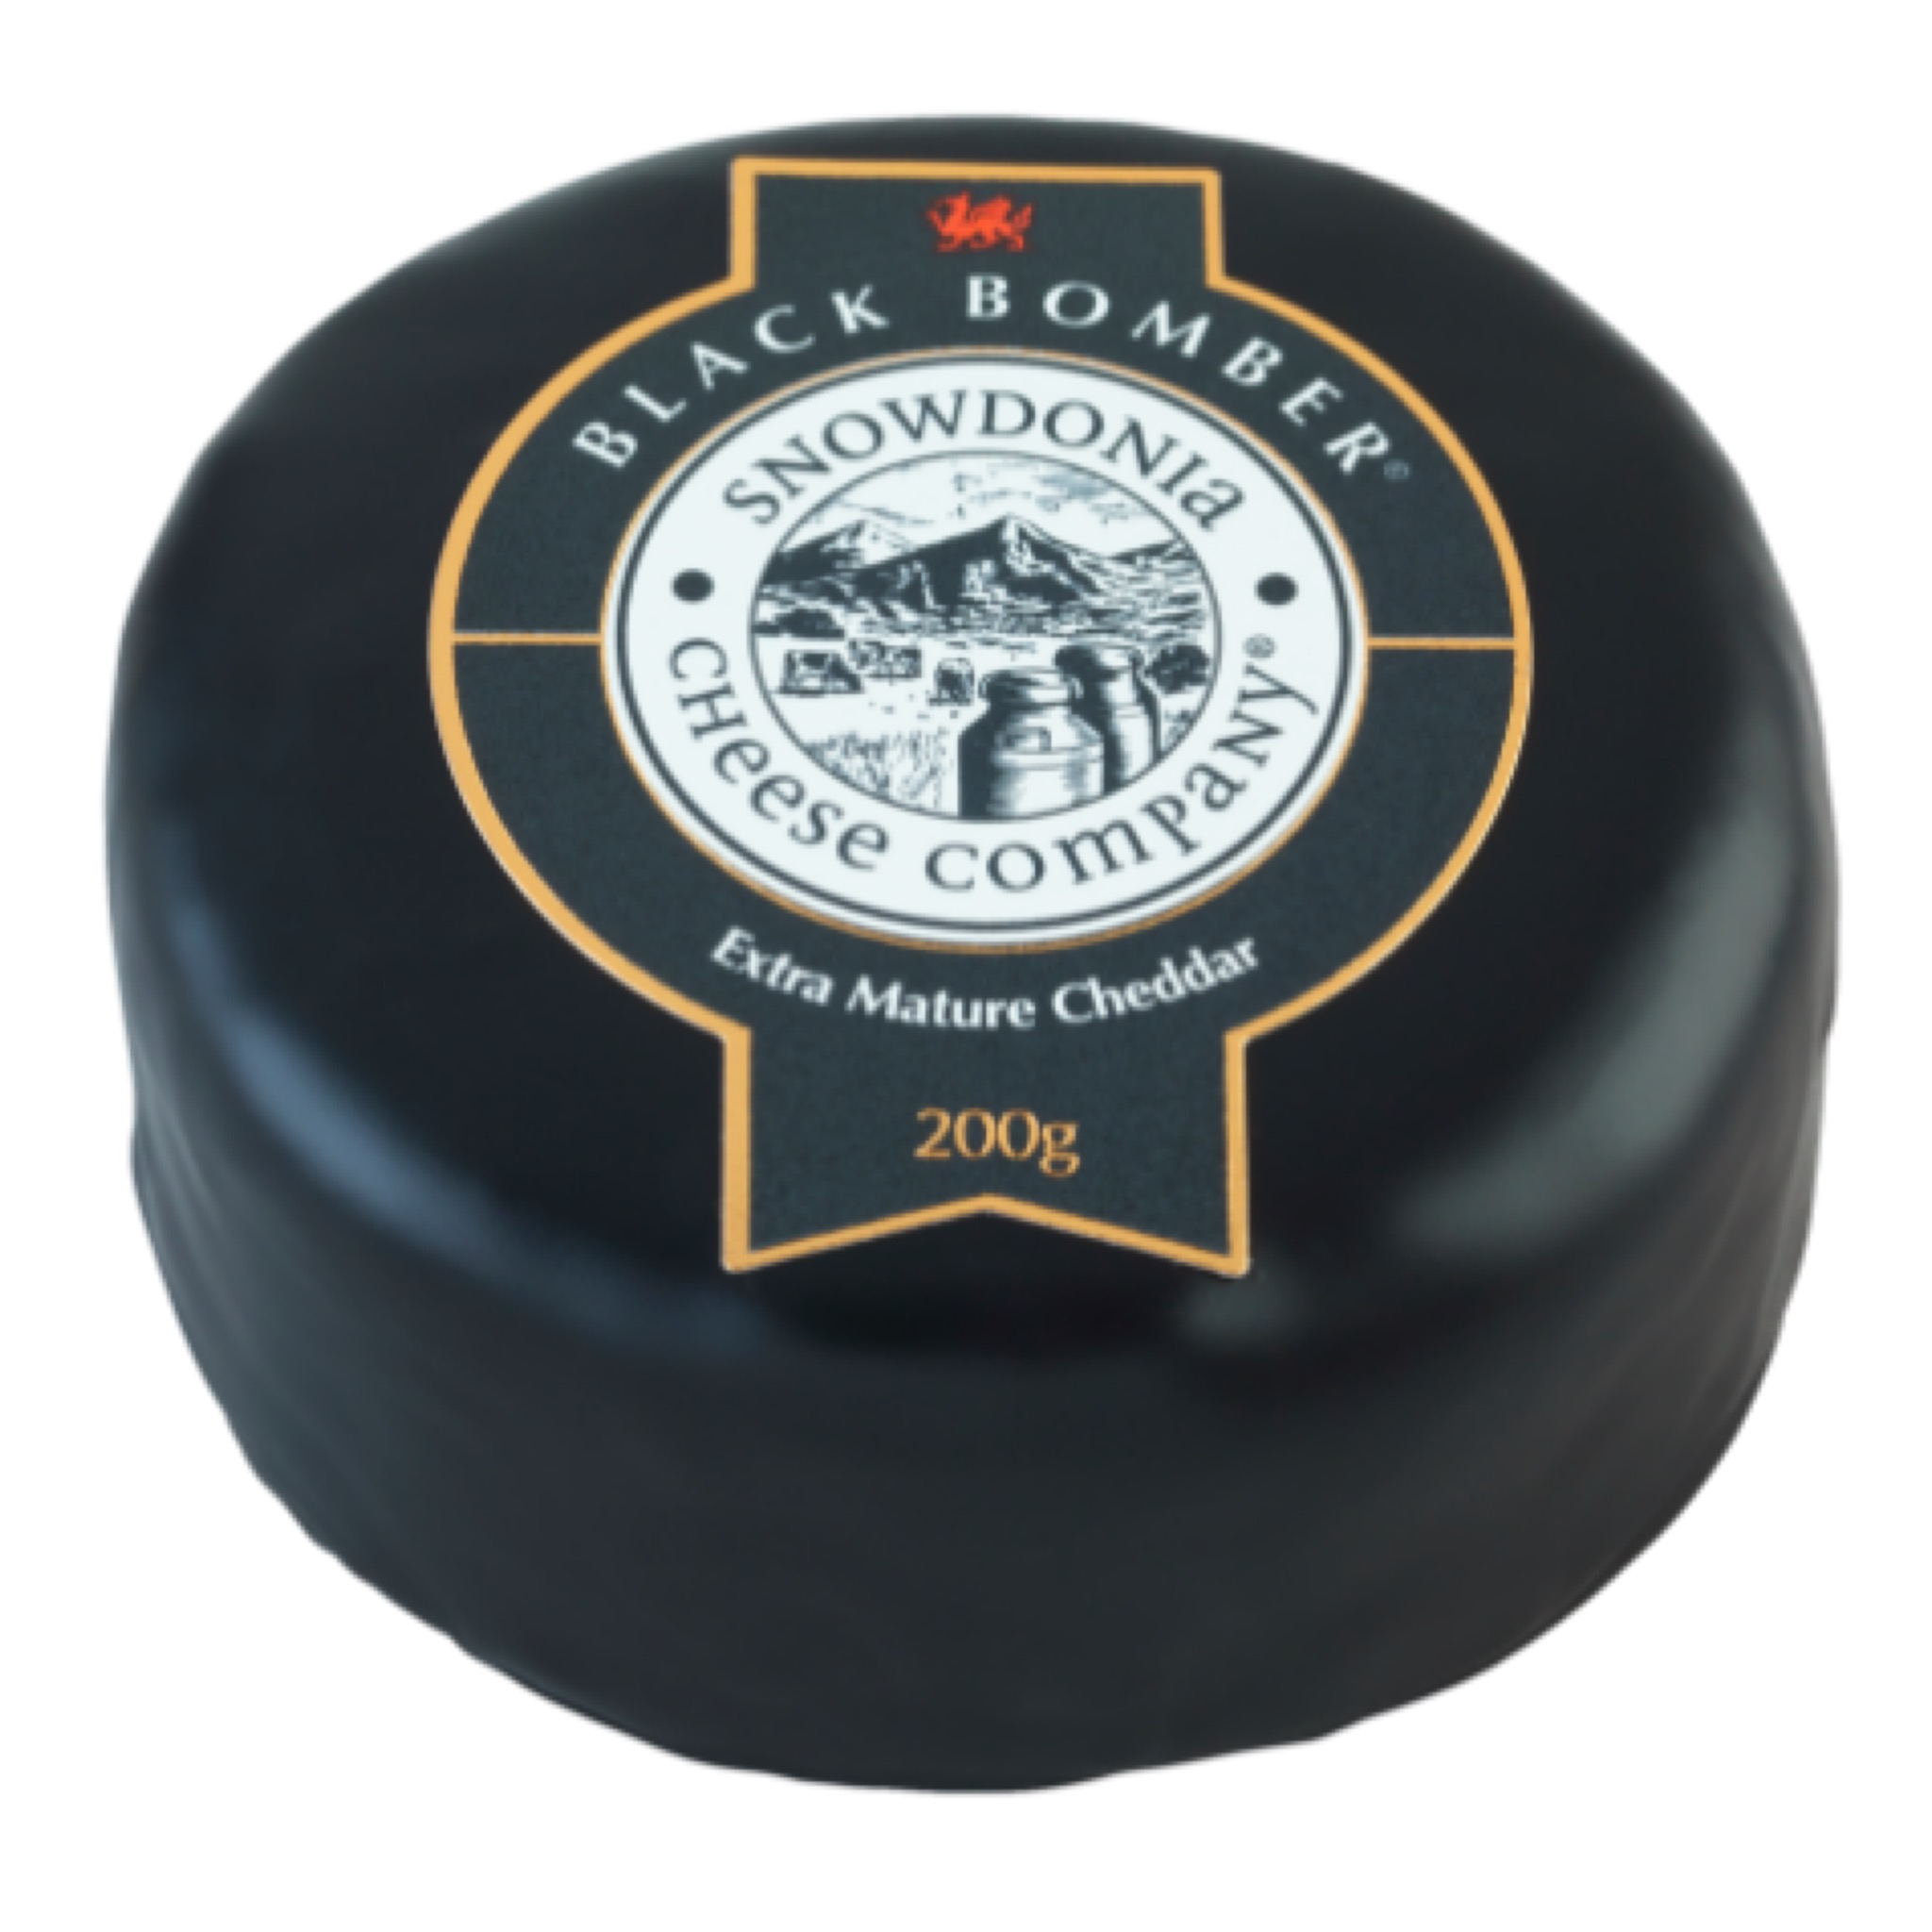 Black Bomber 200g - Extra Mature Cheddar  Snowdonia Cheese Co